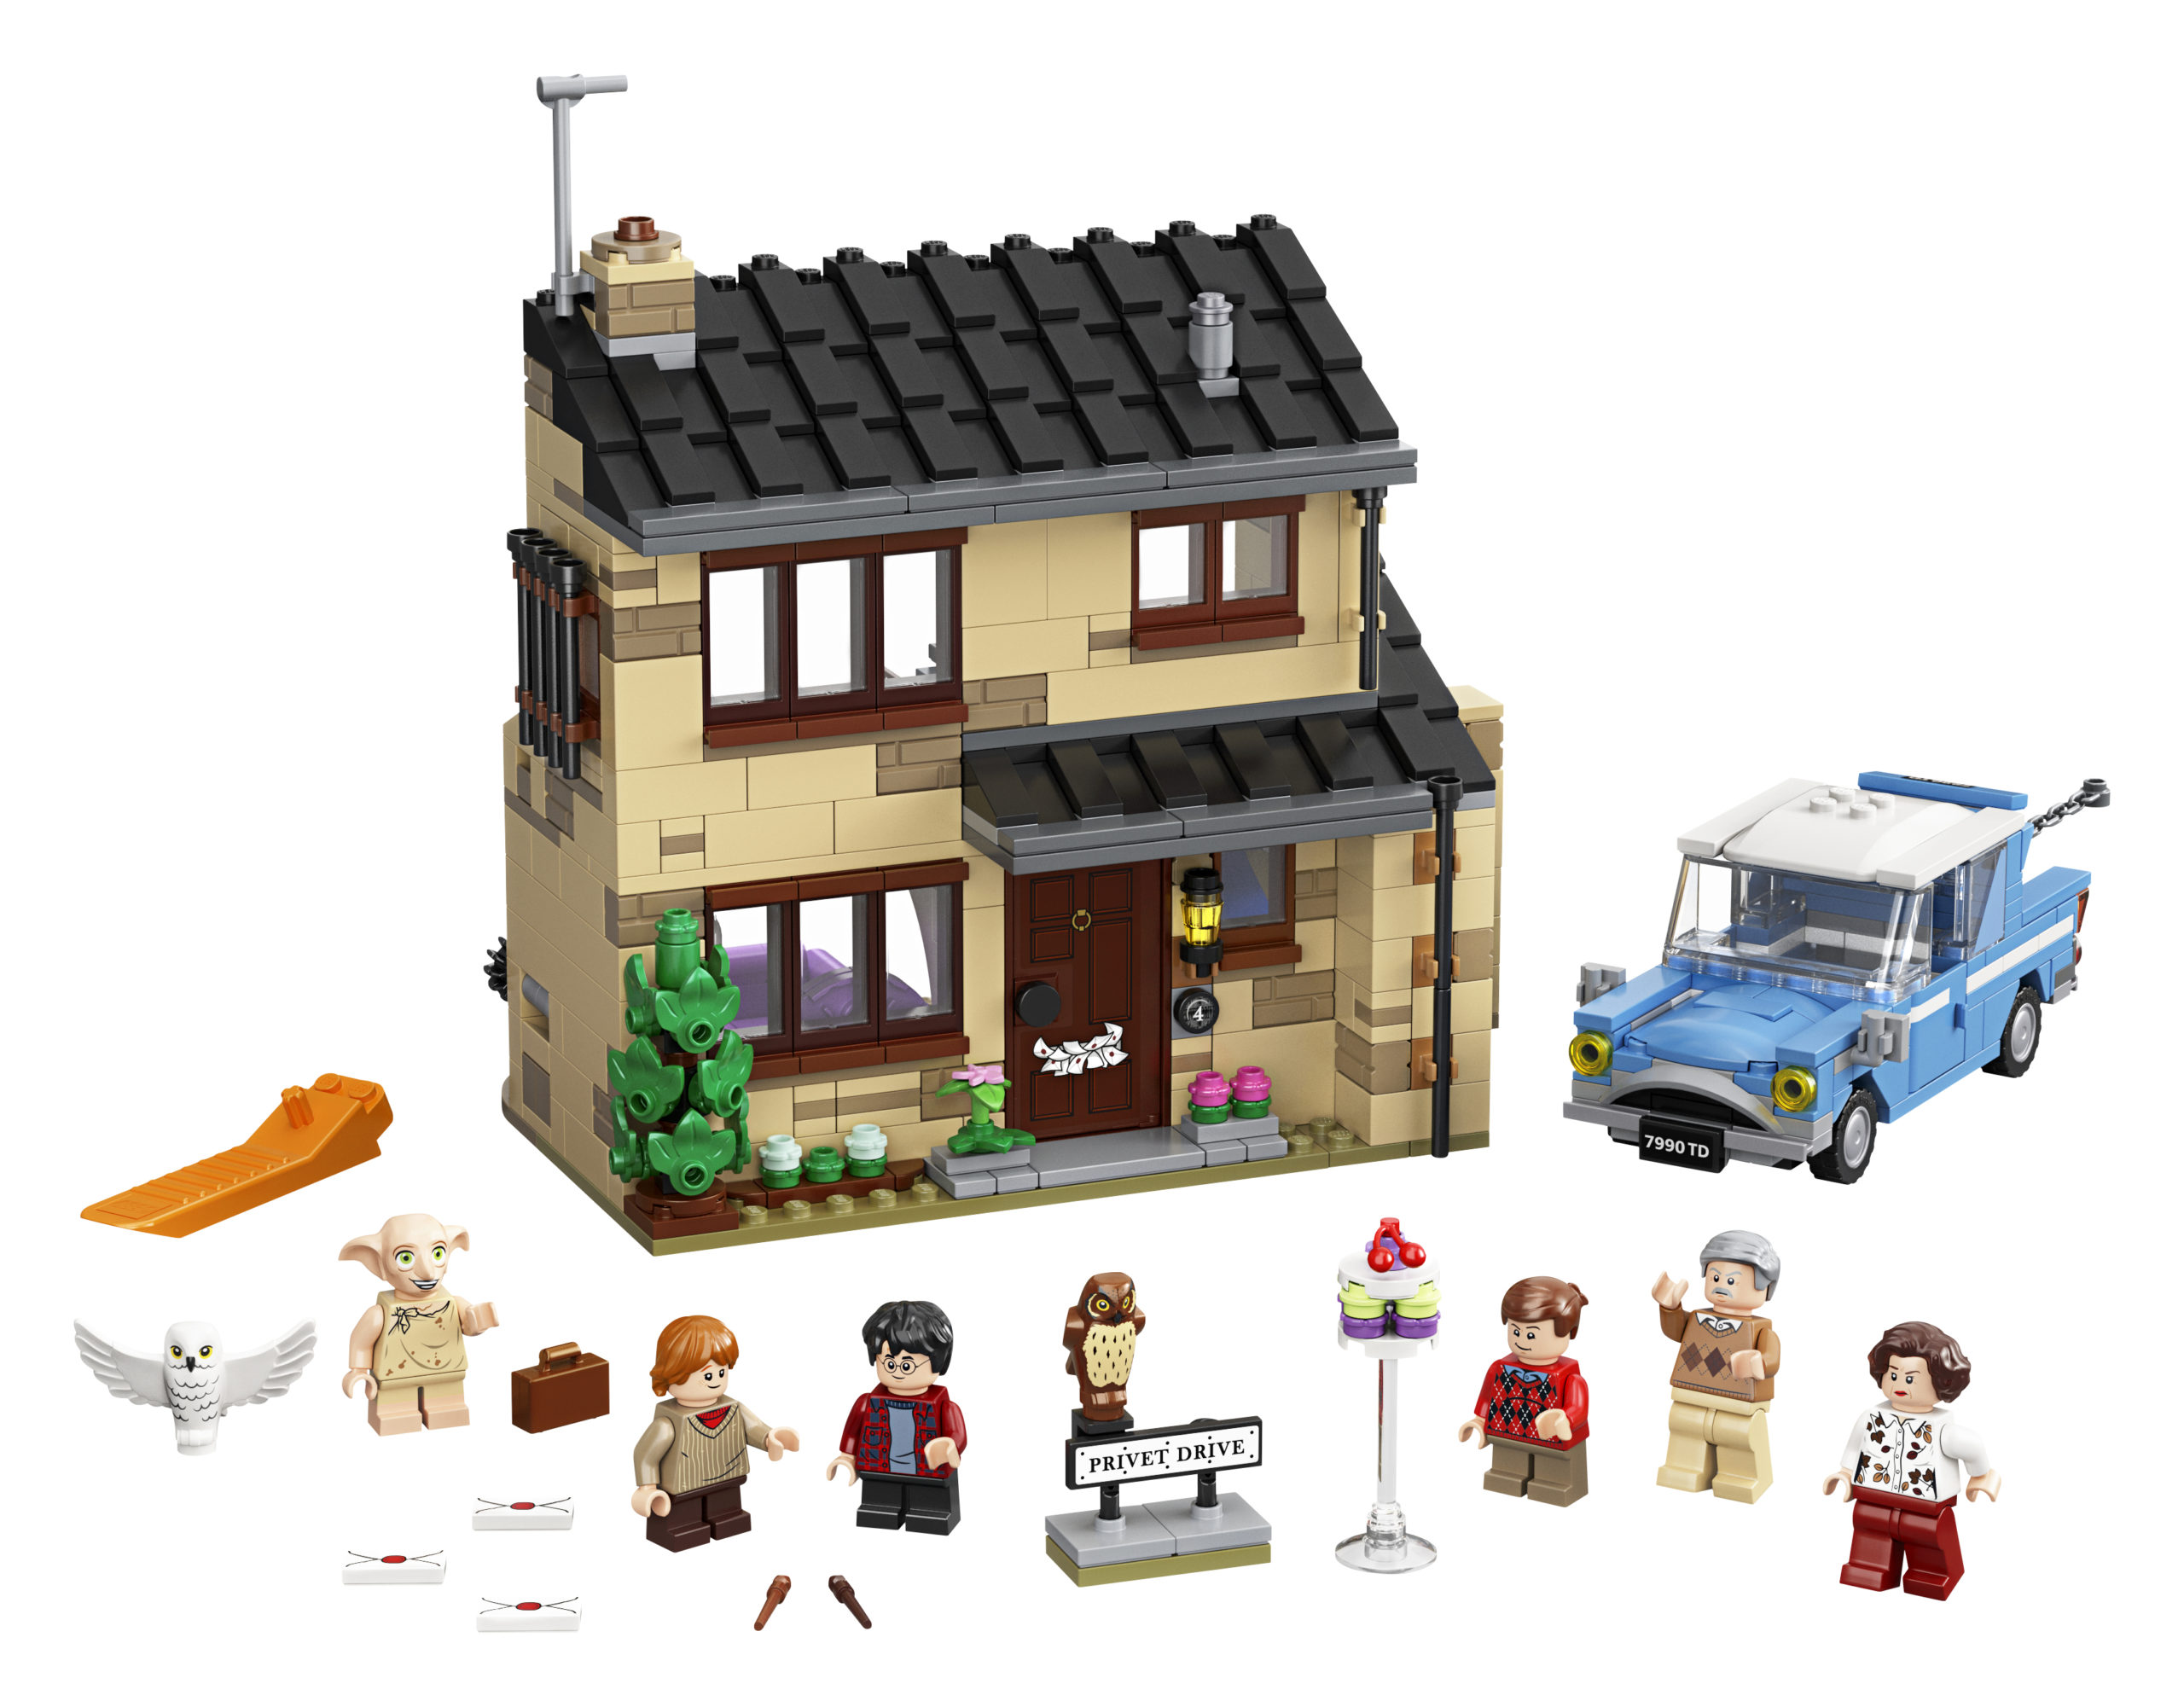 4 Privet Drive includes the Dursleys' house and the Flying Ford Anglia. You can even make Dobby drop a cake on one of the minifigures!